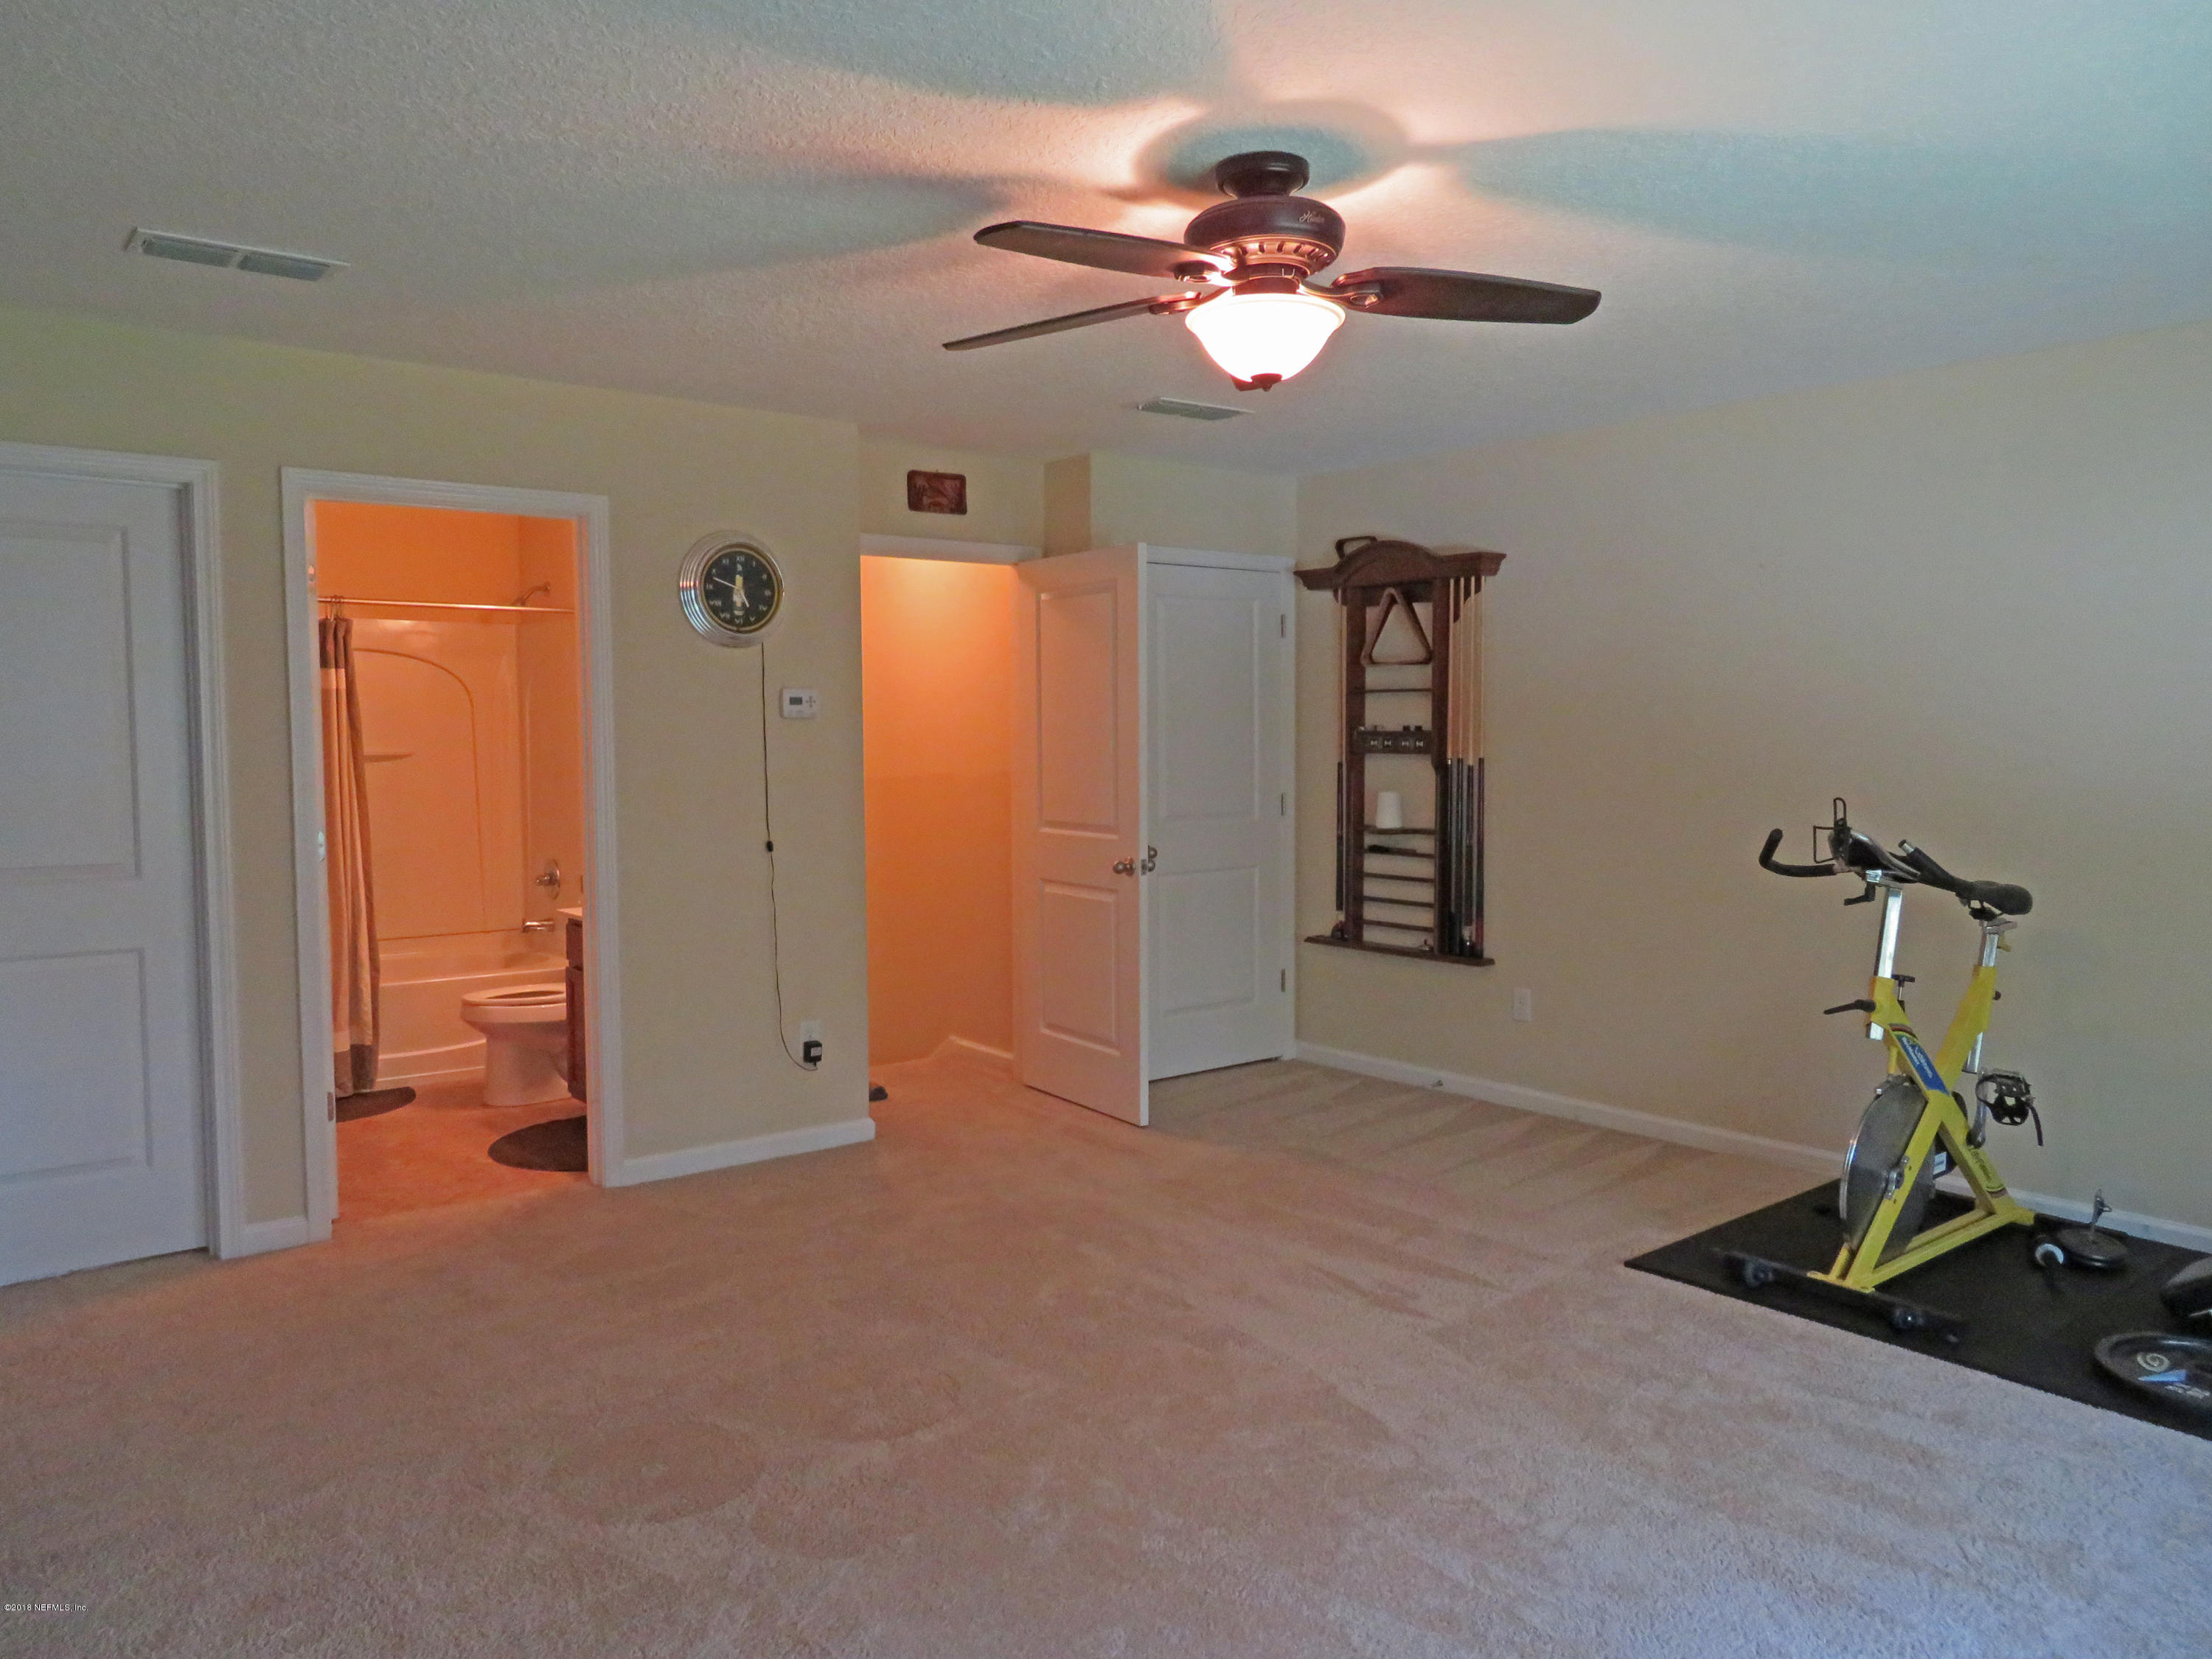 1009 TORRY, ST JOHNS, FLORIDA 32259, 5 Bedrooms Bedrooms, ,3 BathroomsBathrooms,Residential - single family,For sale,TORRY,951532